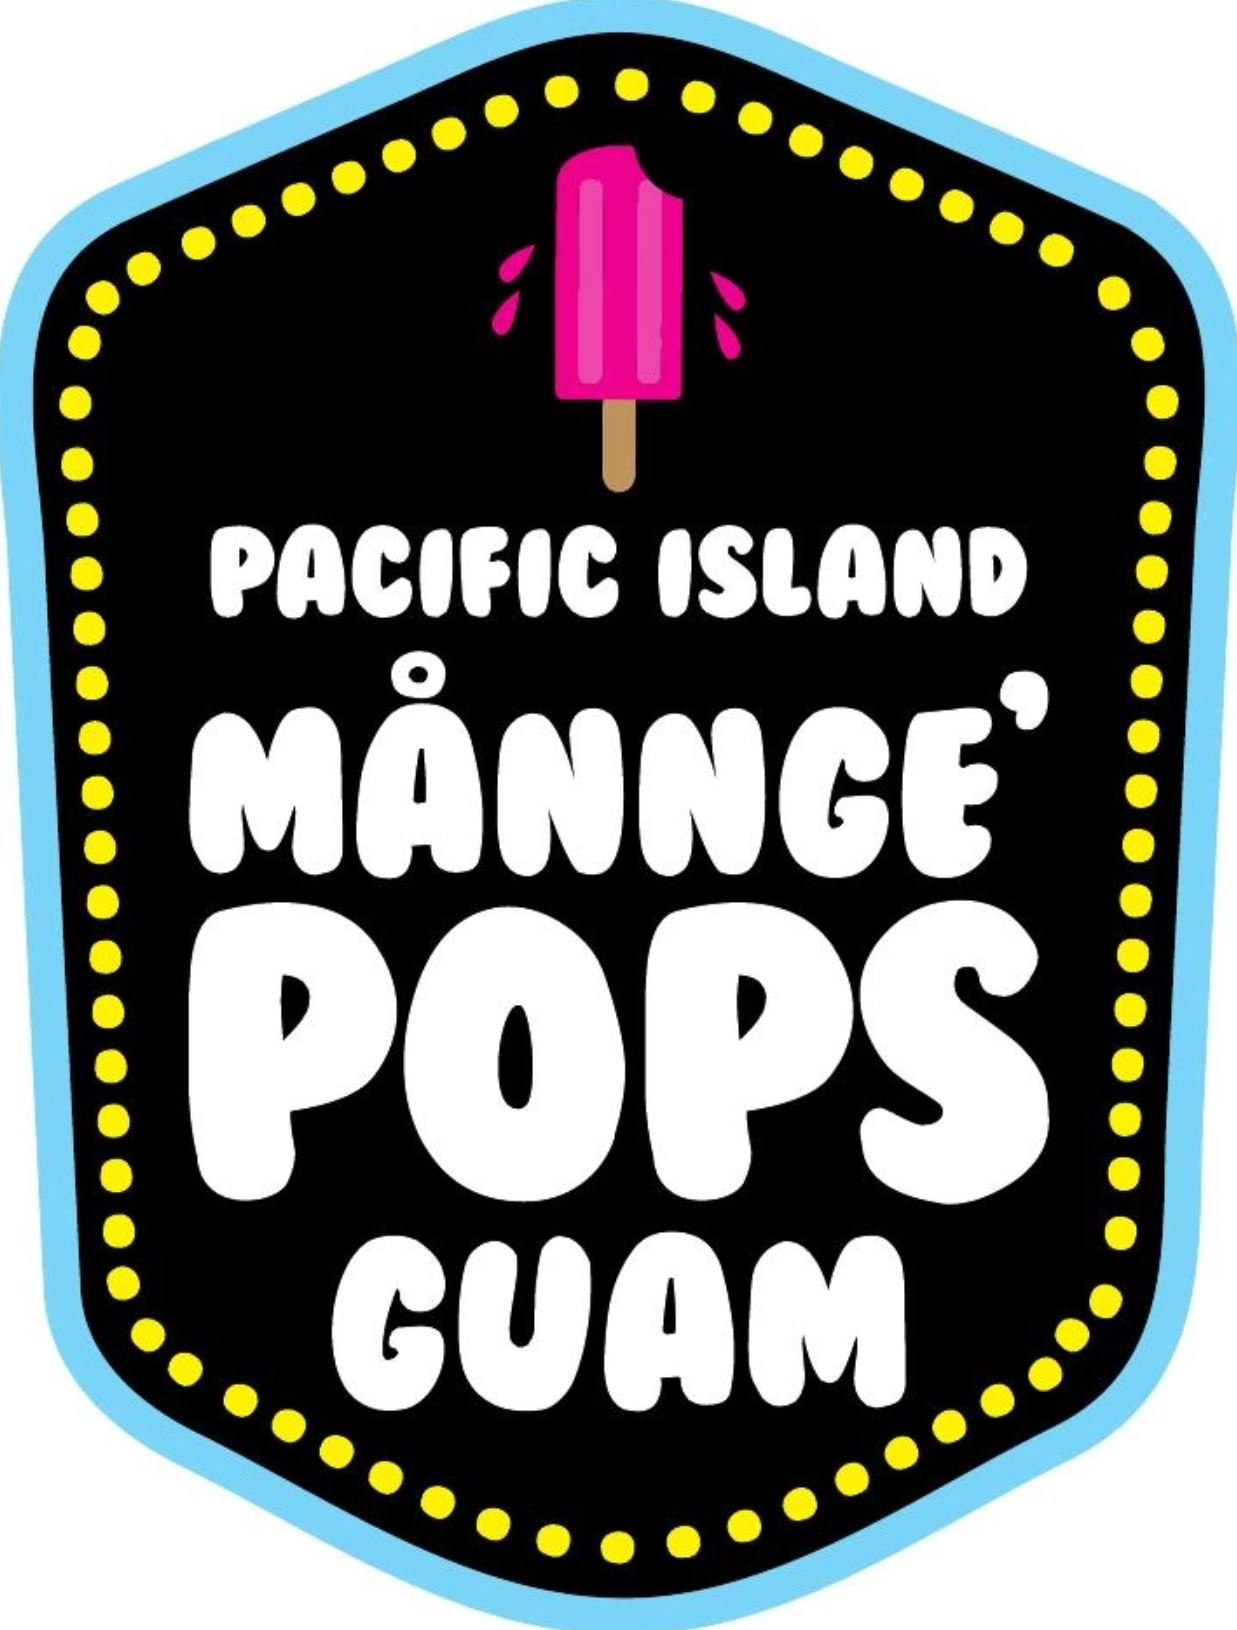 Mannge Pops Pre-packaged ice pops made in Guam. We are an official Guam Product Seal member.